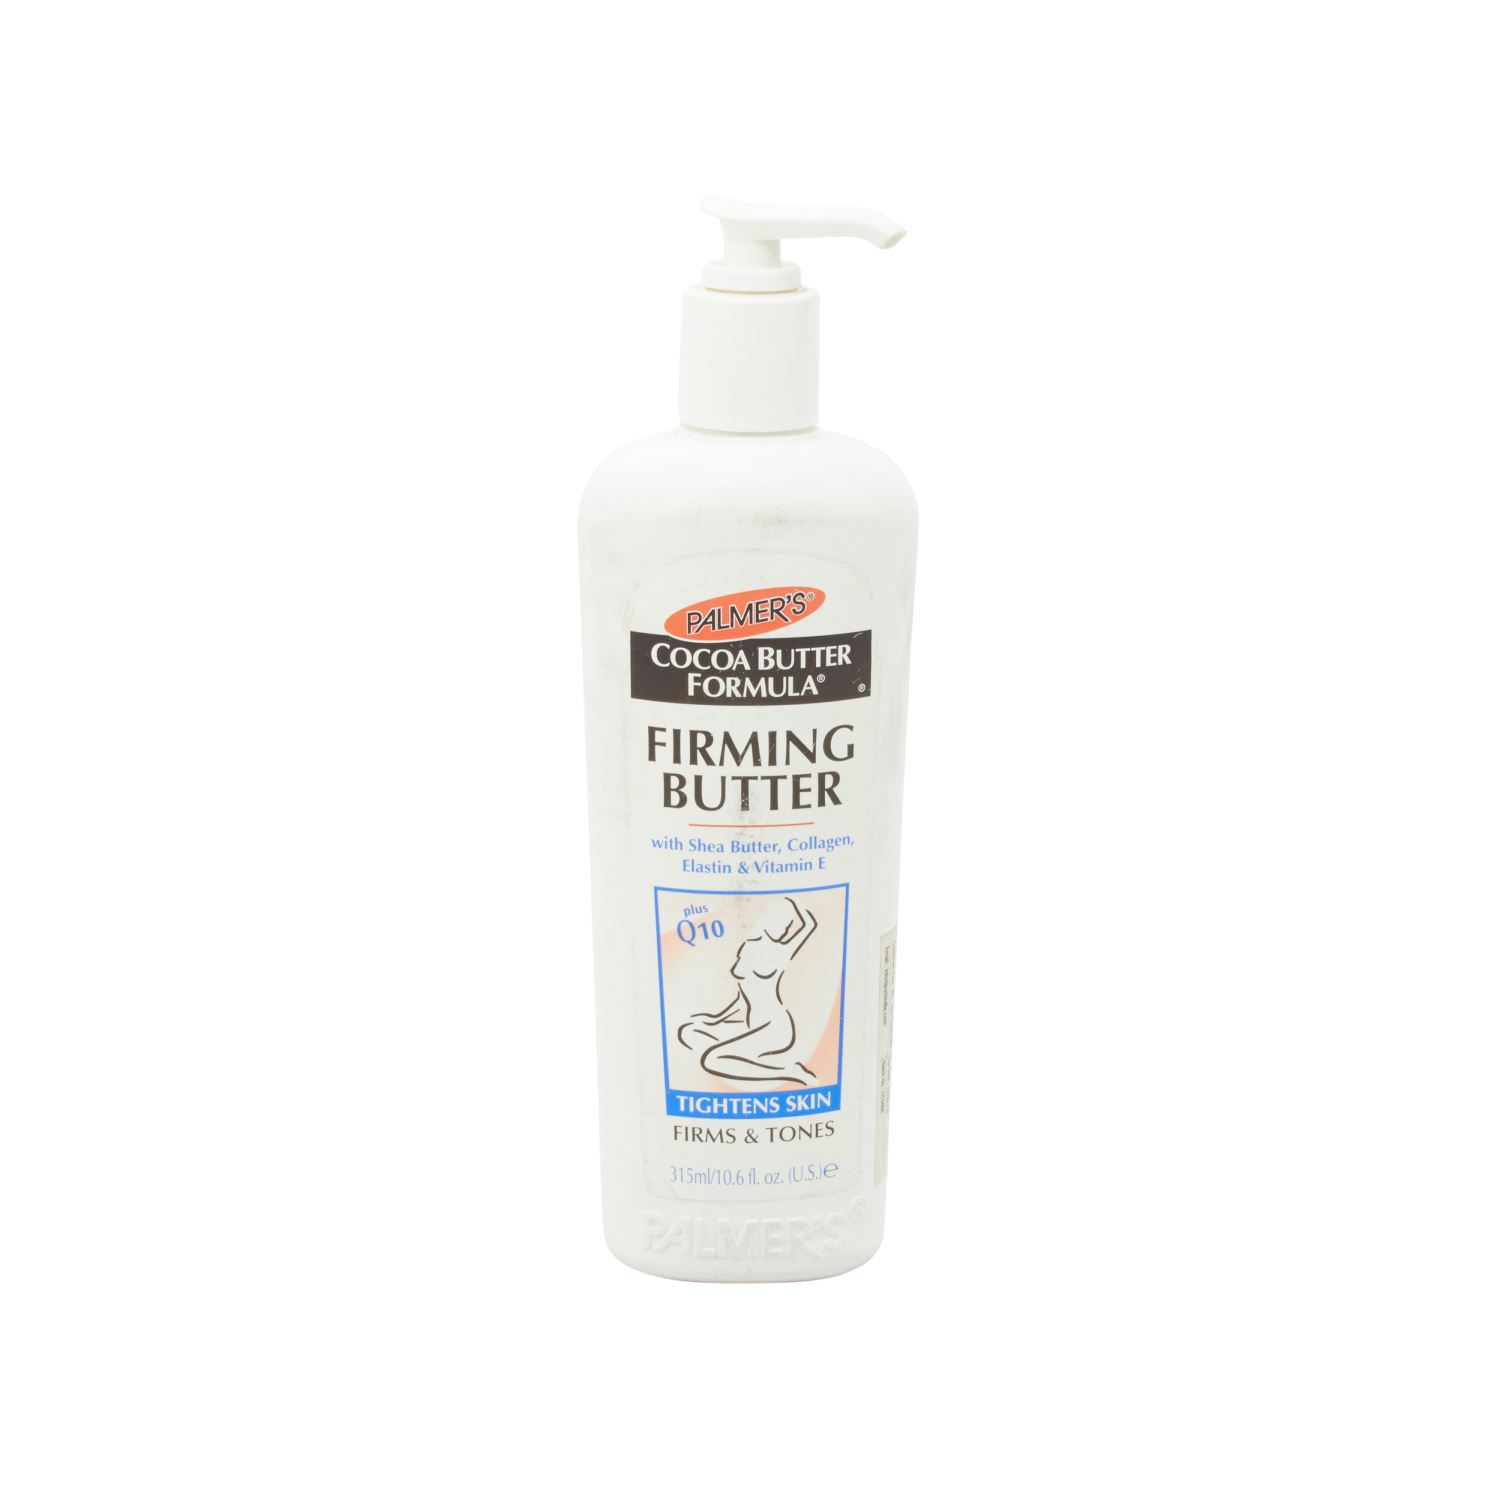 Palmers Firming Butter Lotion - 315 ml